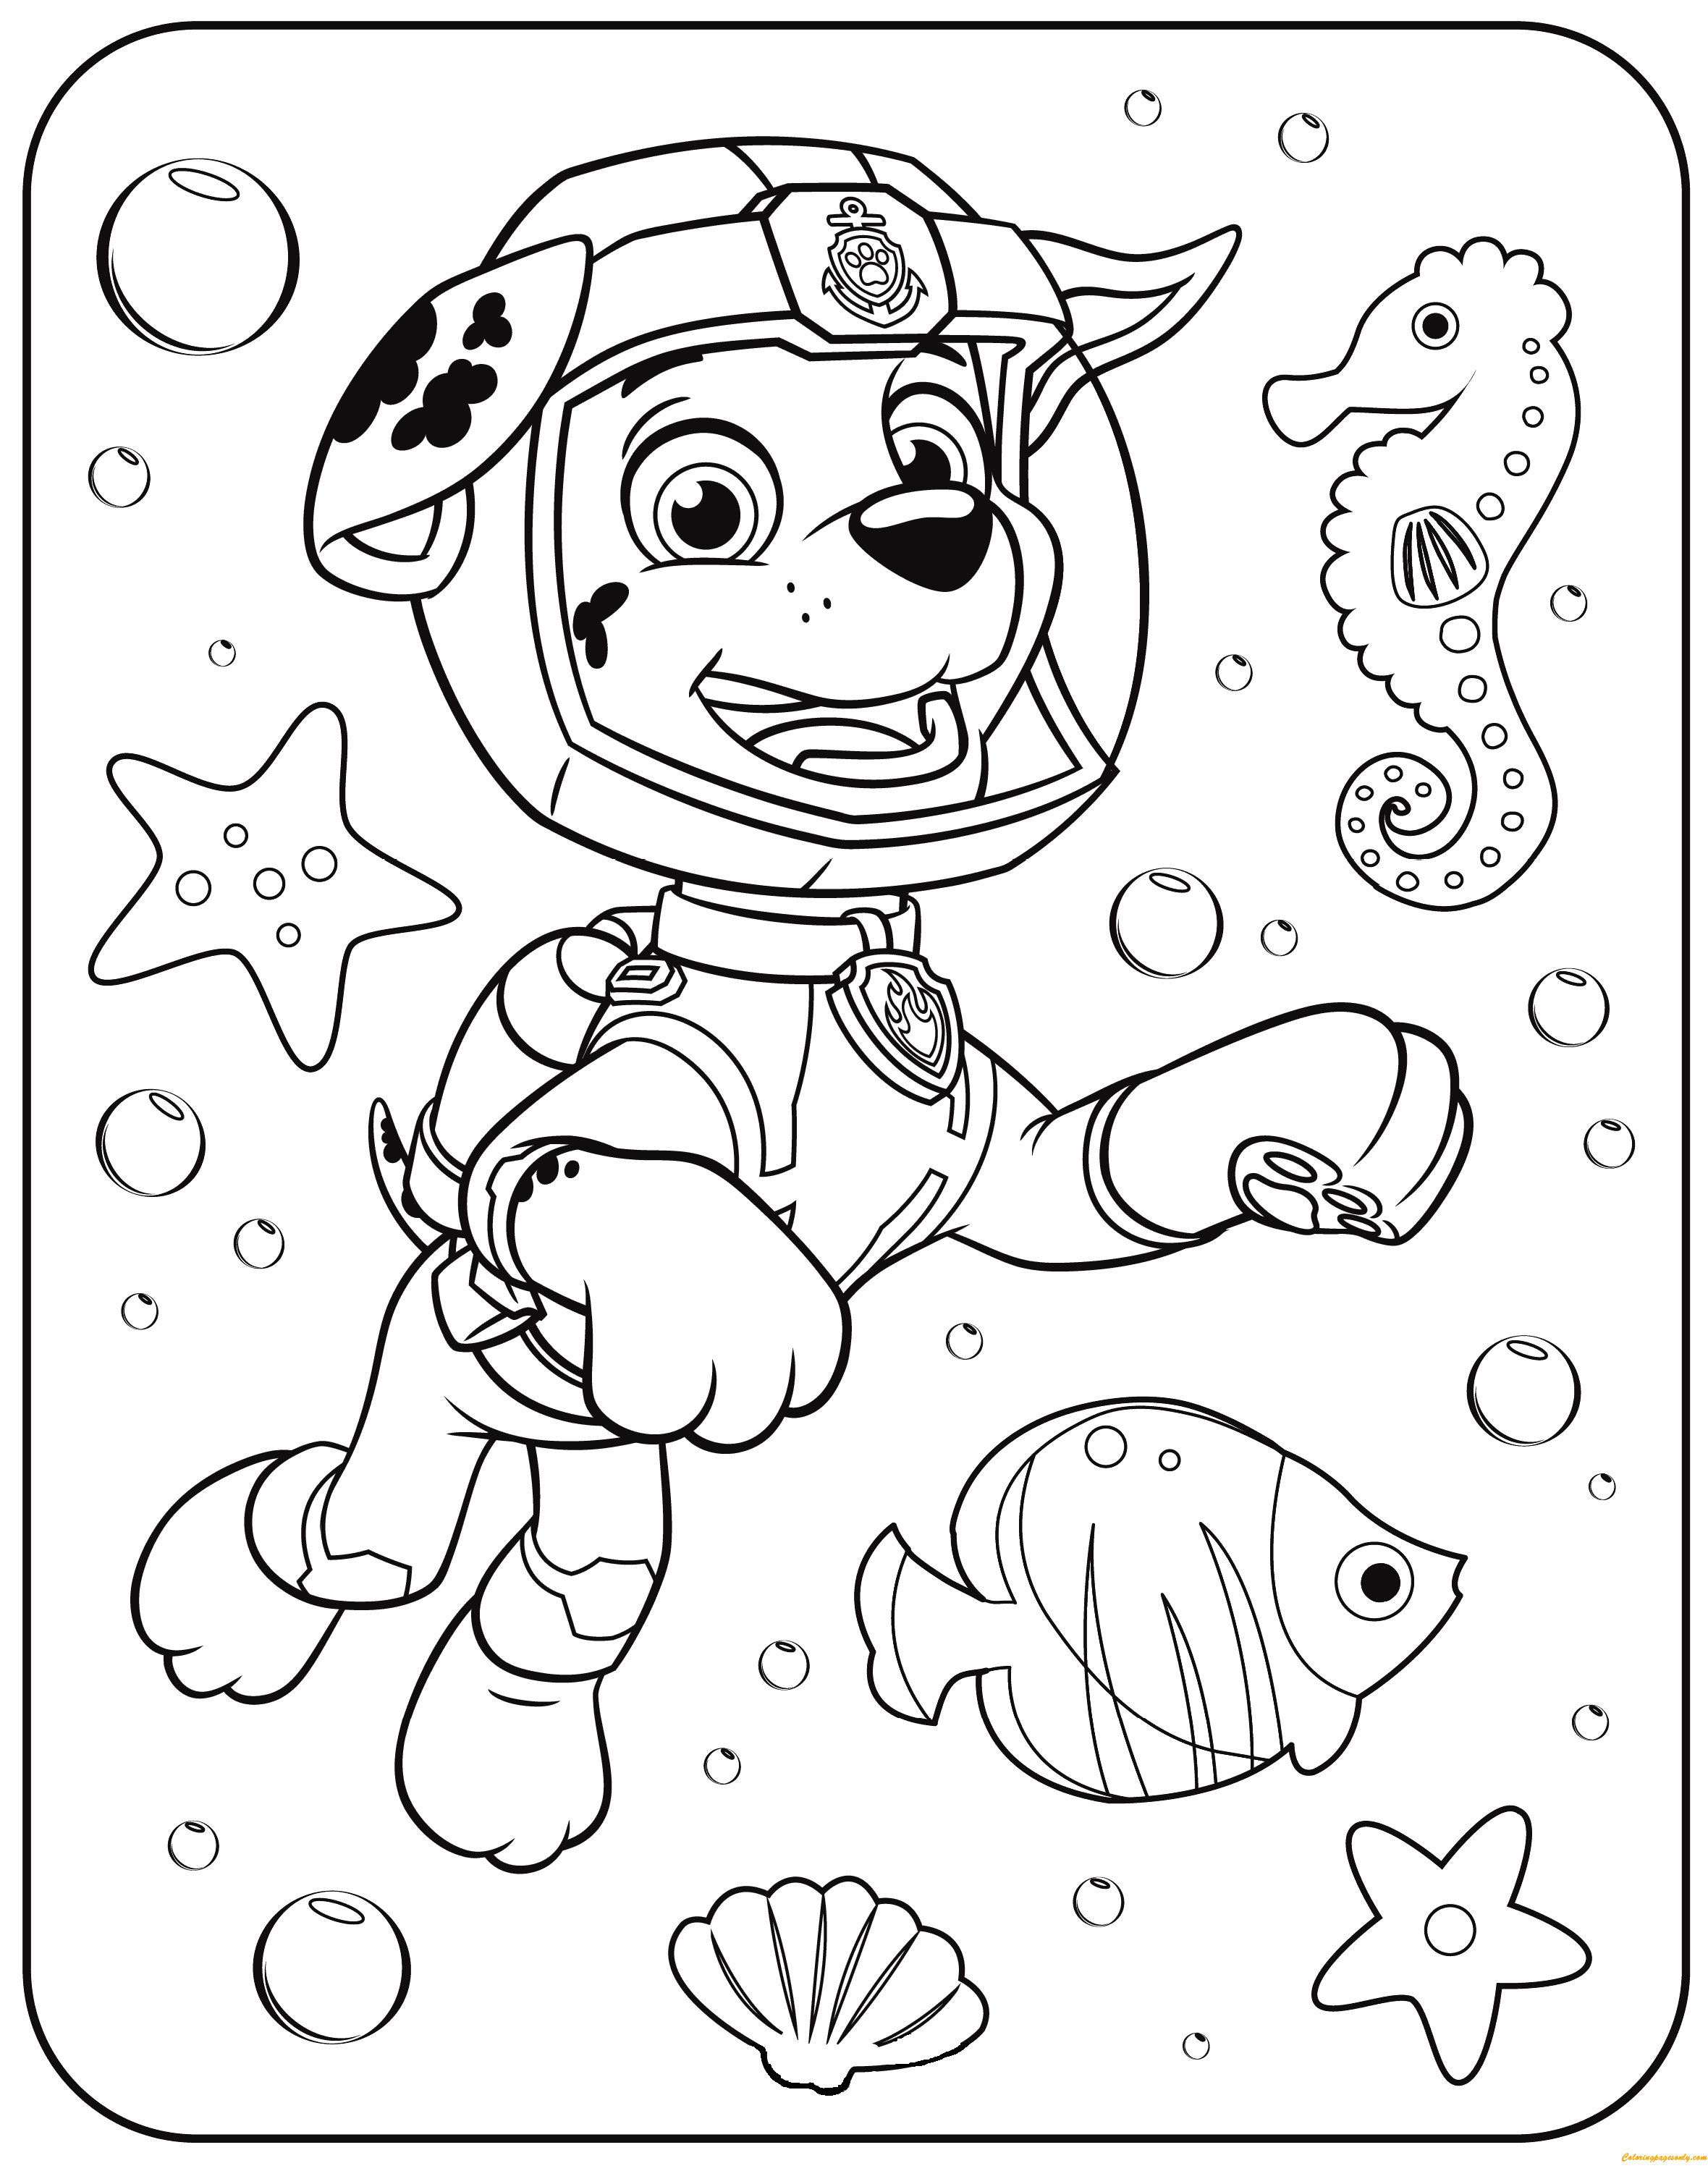 paw patrol marshall underwater coloring page - Underwater Coloring Pages